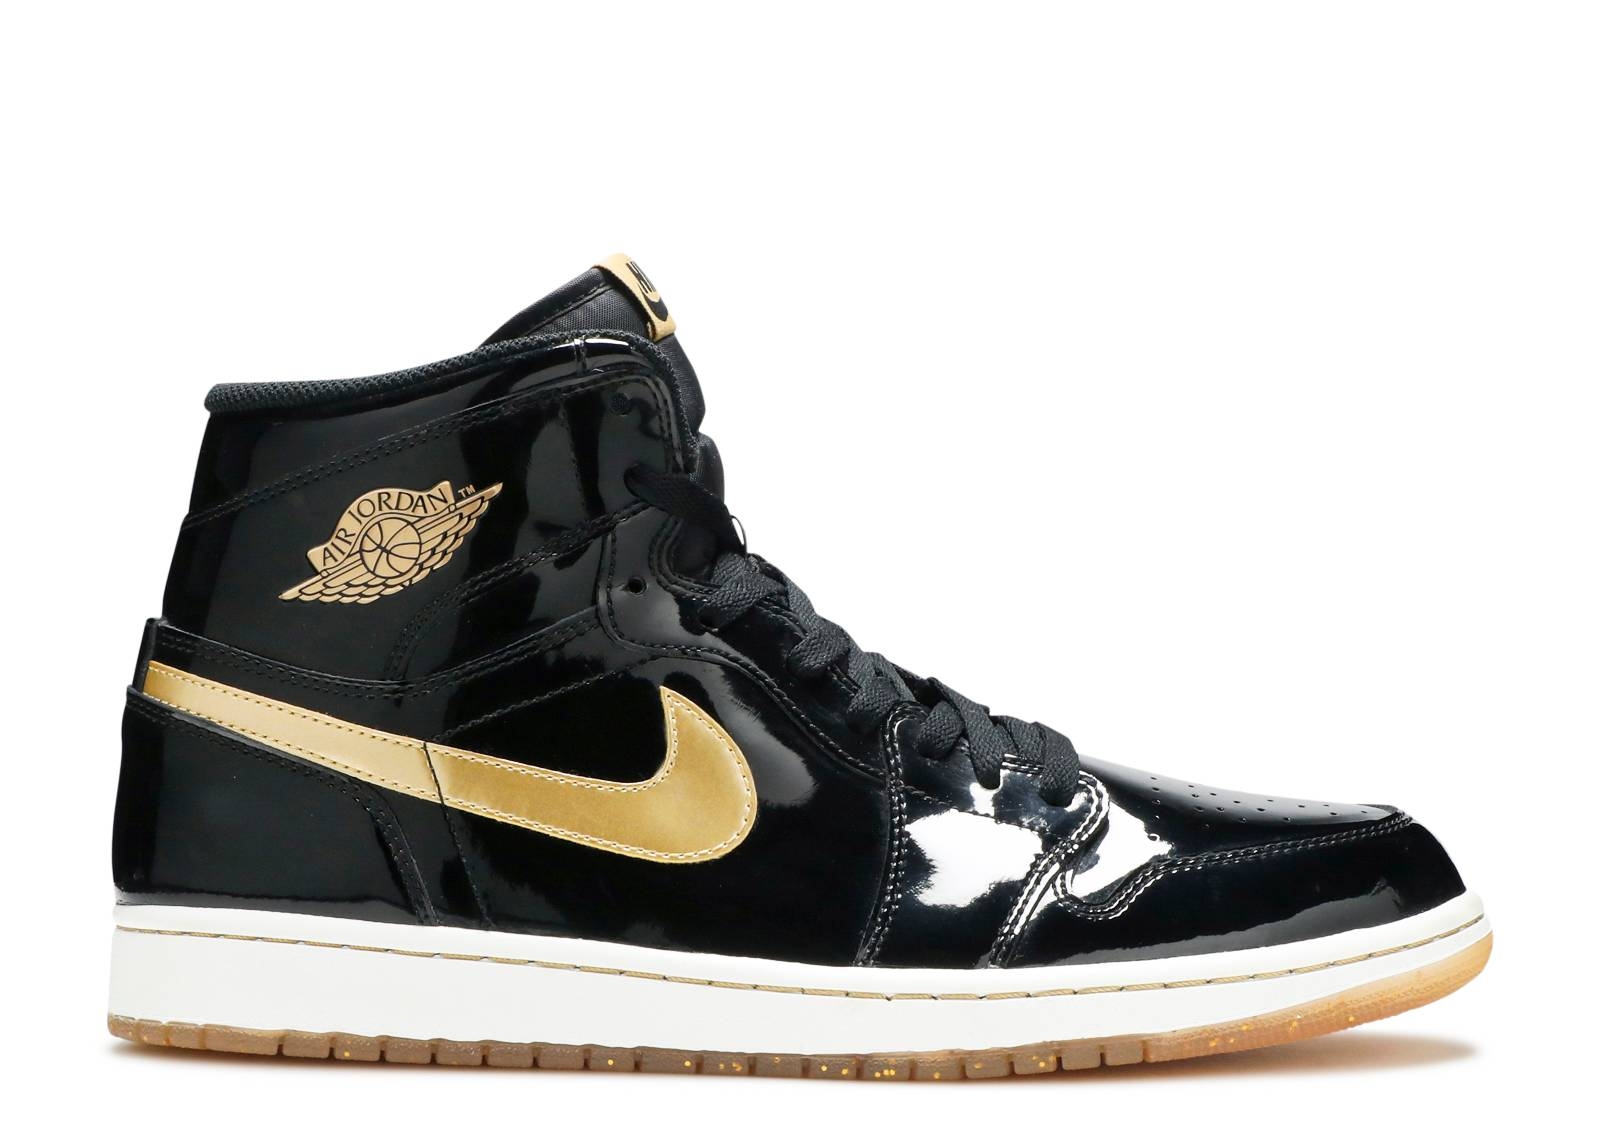 newest 9a71e 24f18 Air Jordan 1 Retro High OG 'Black and Gold'